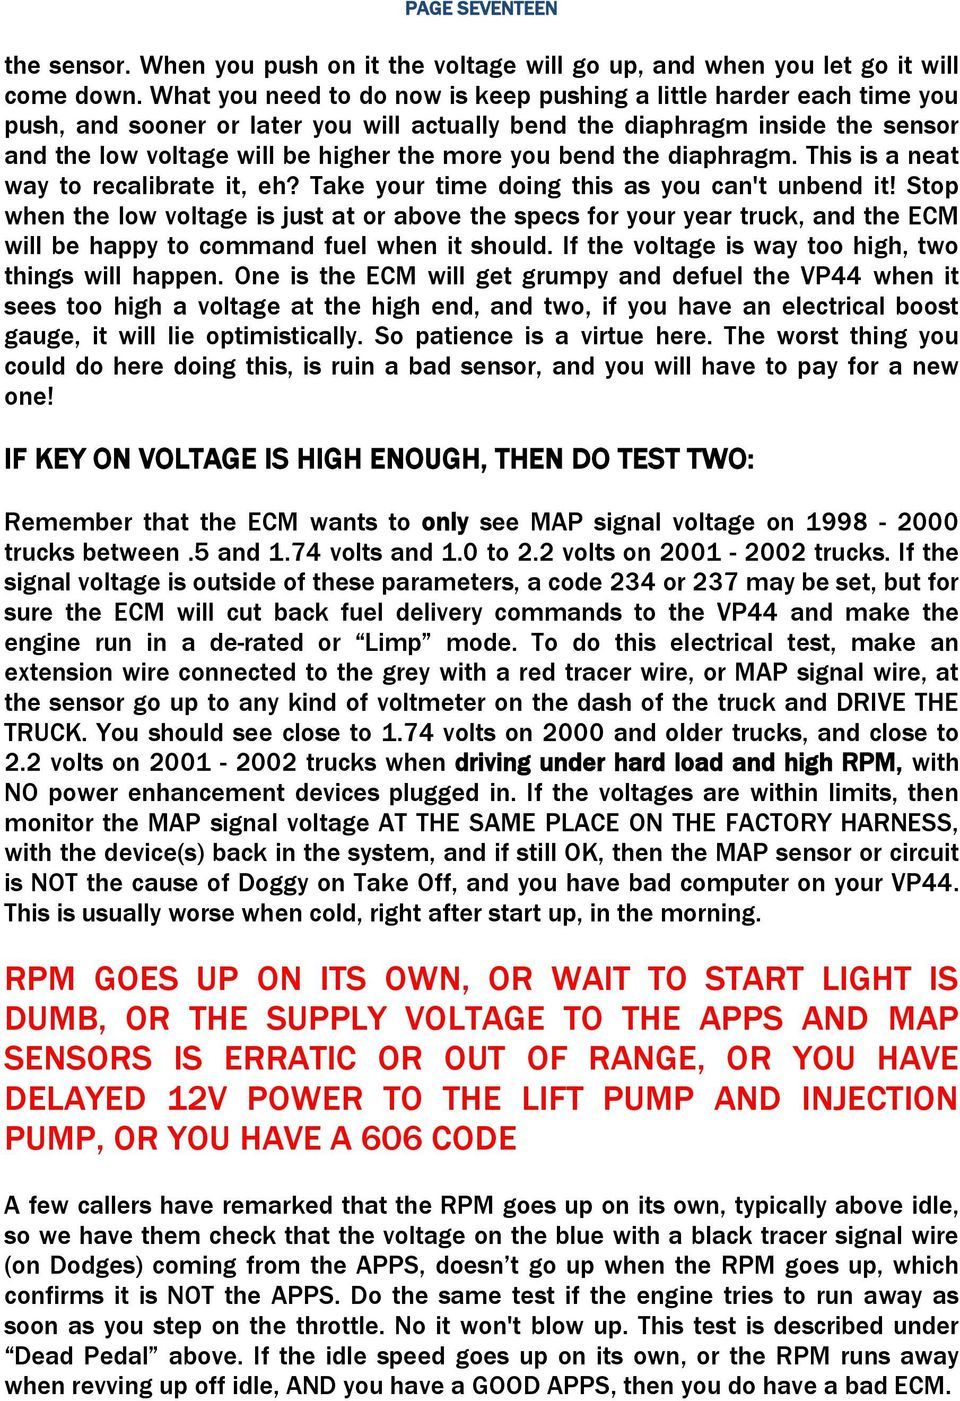 HOW TO DIAGNOSE VP44 FUEL SYSTEM ISSUES - PDF